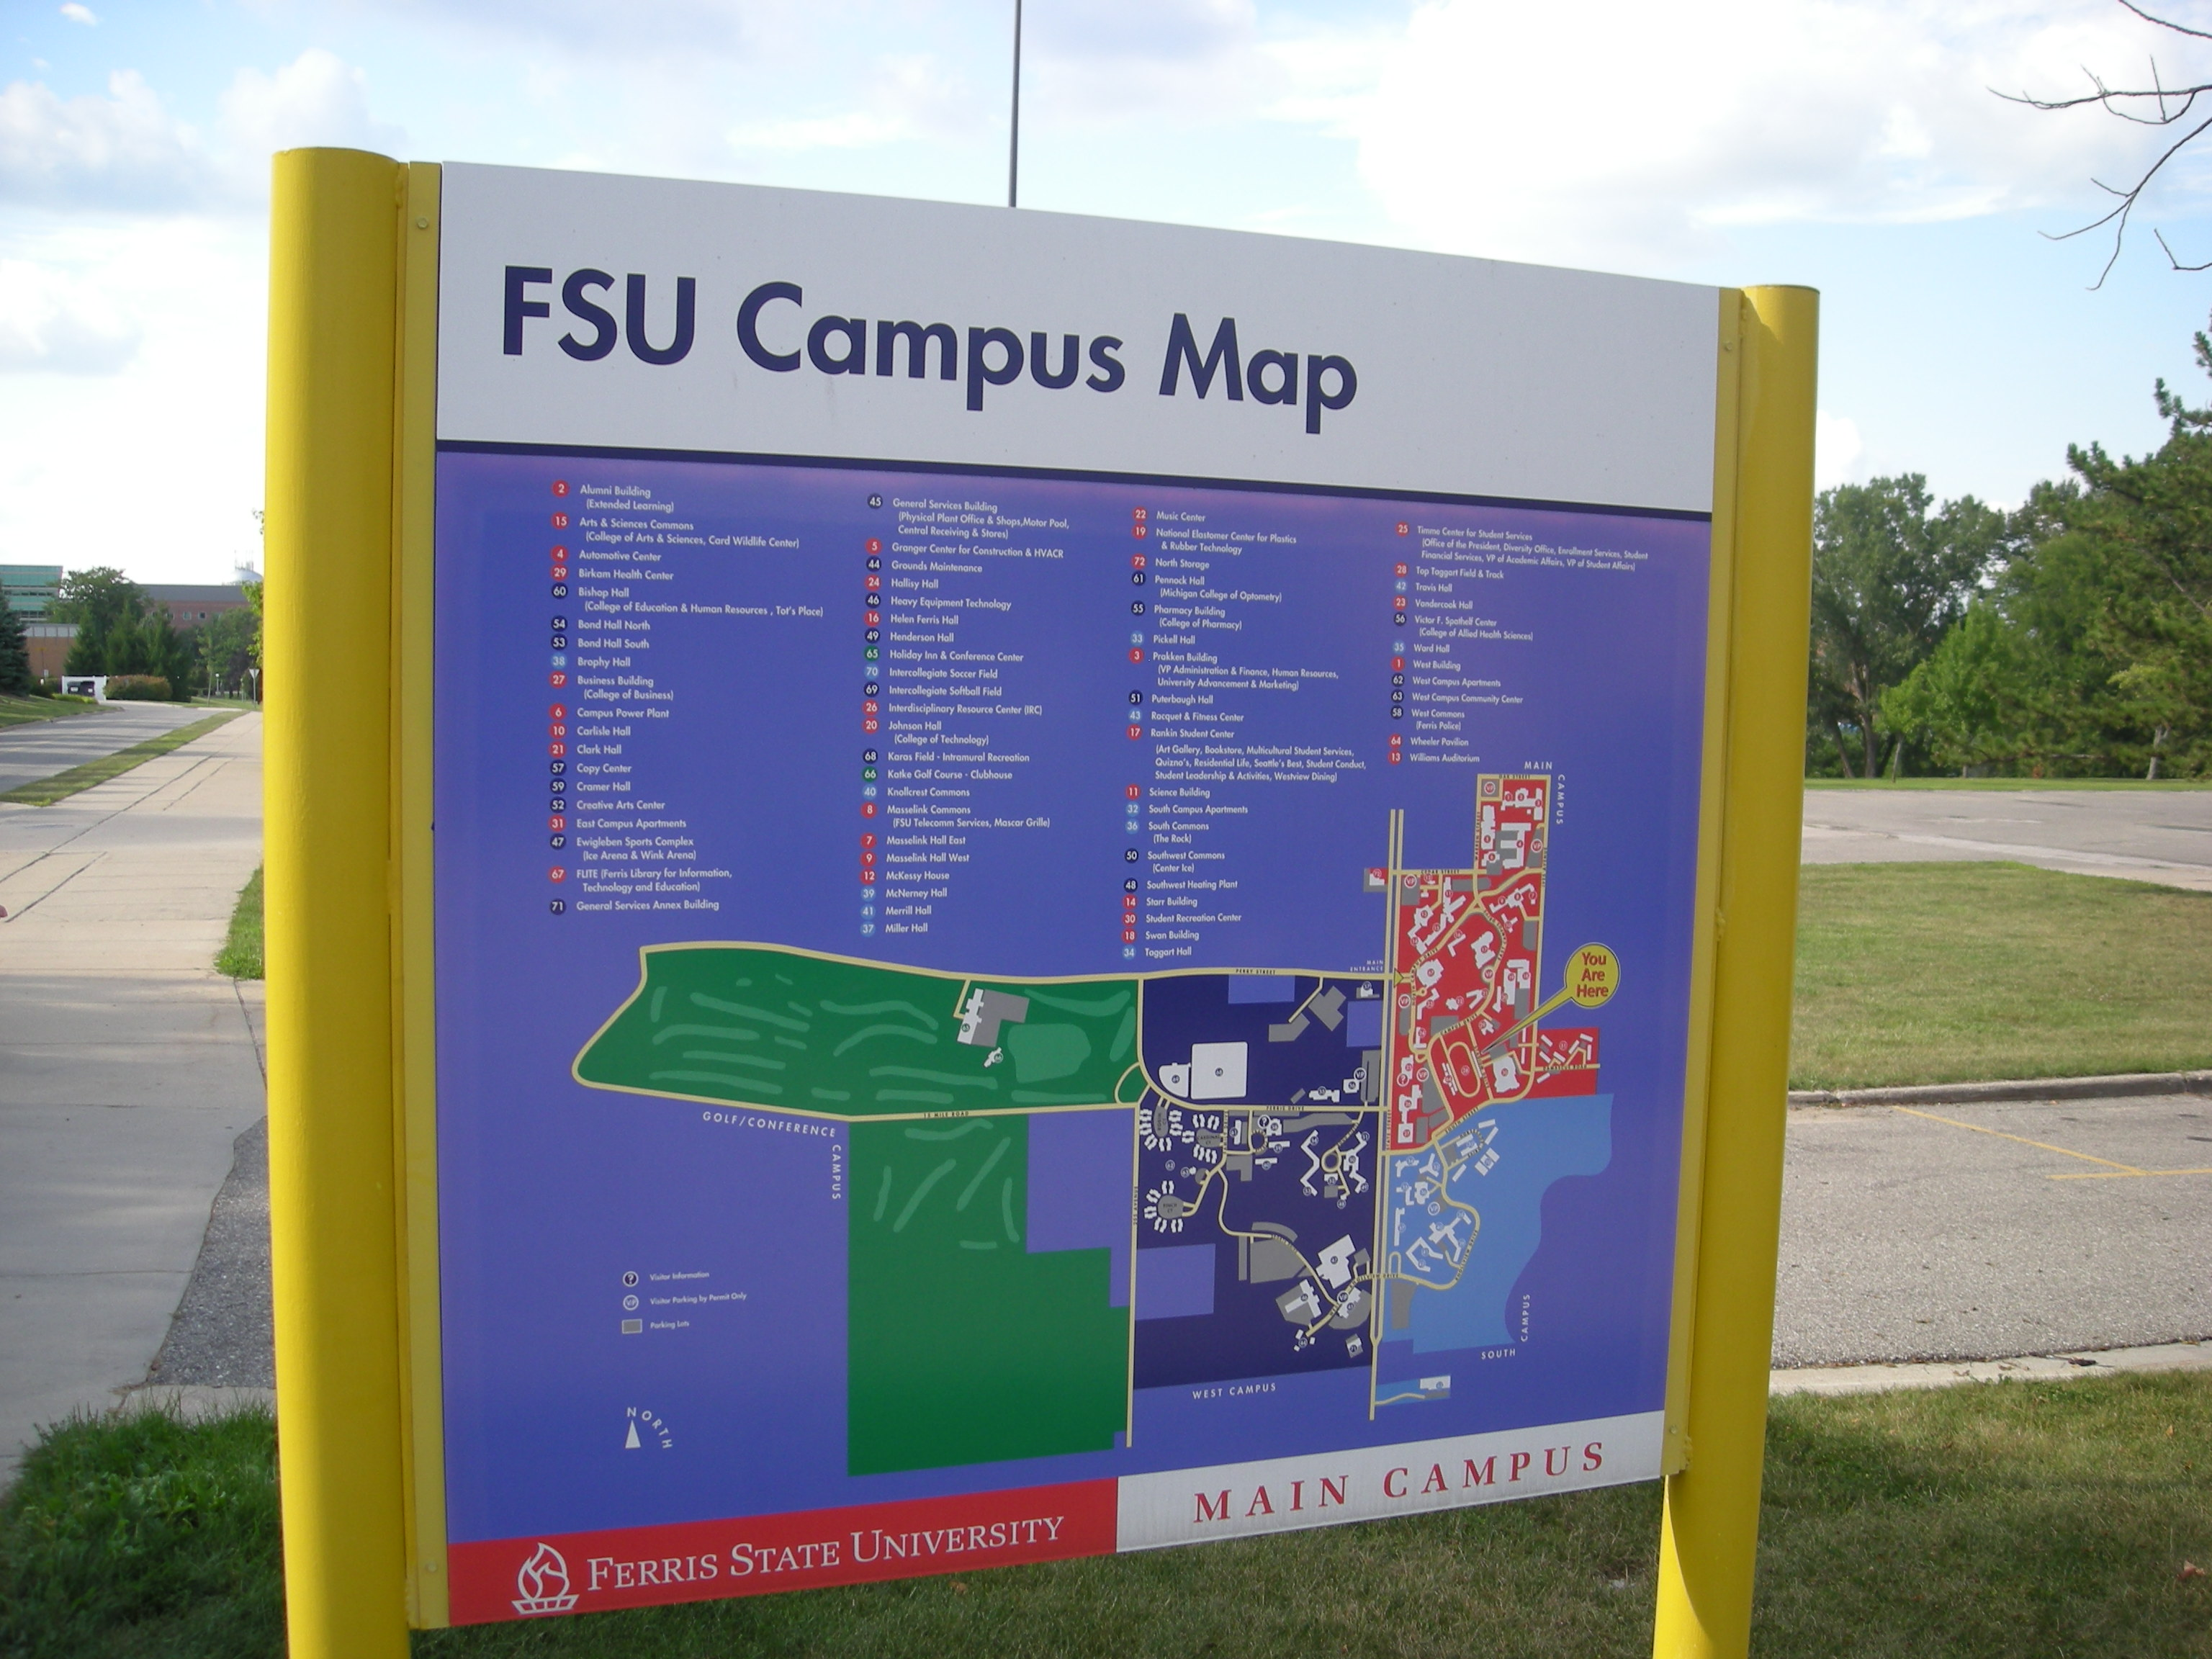 Ferris State Campus Map File:Ferris State University August 2010 04 (campus map).